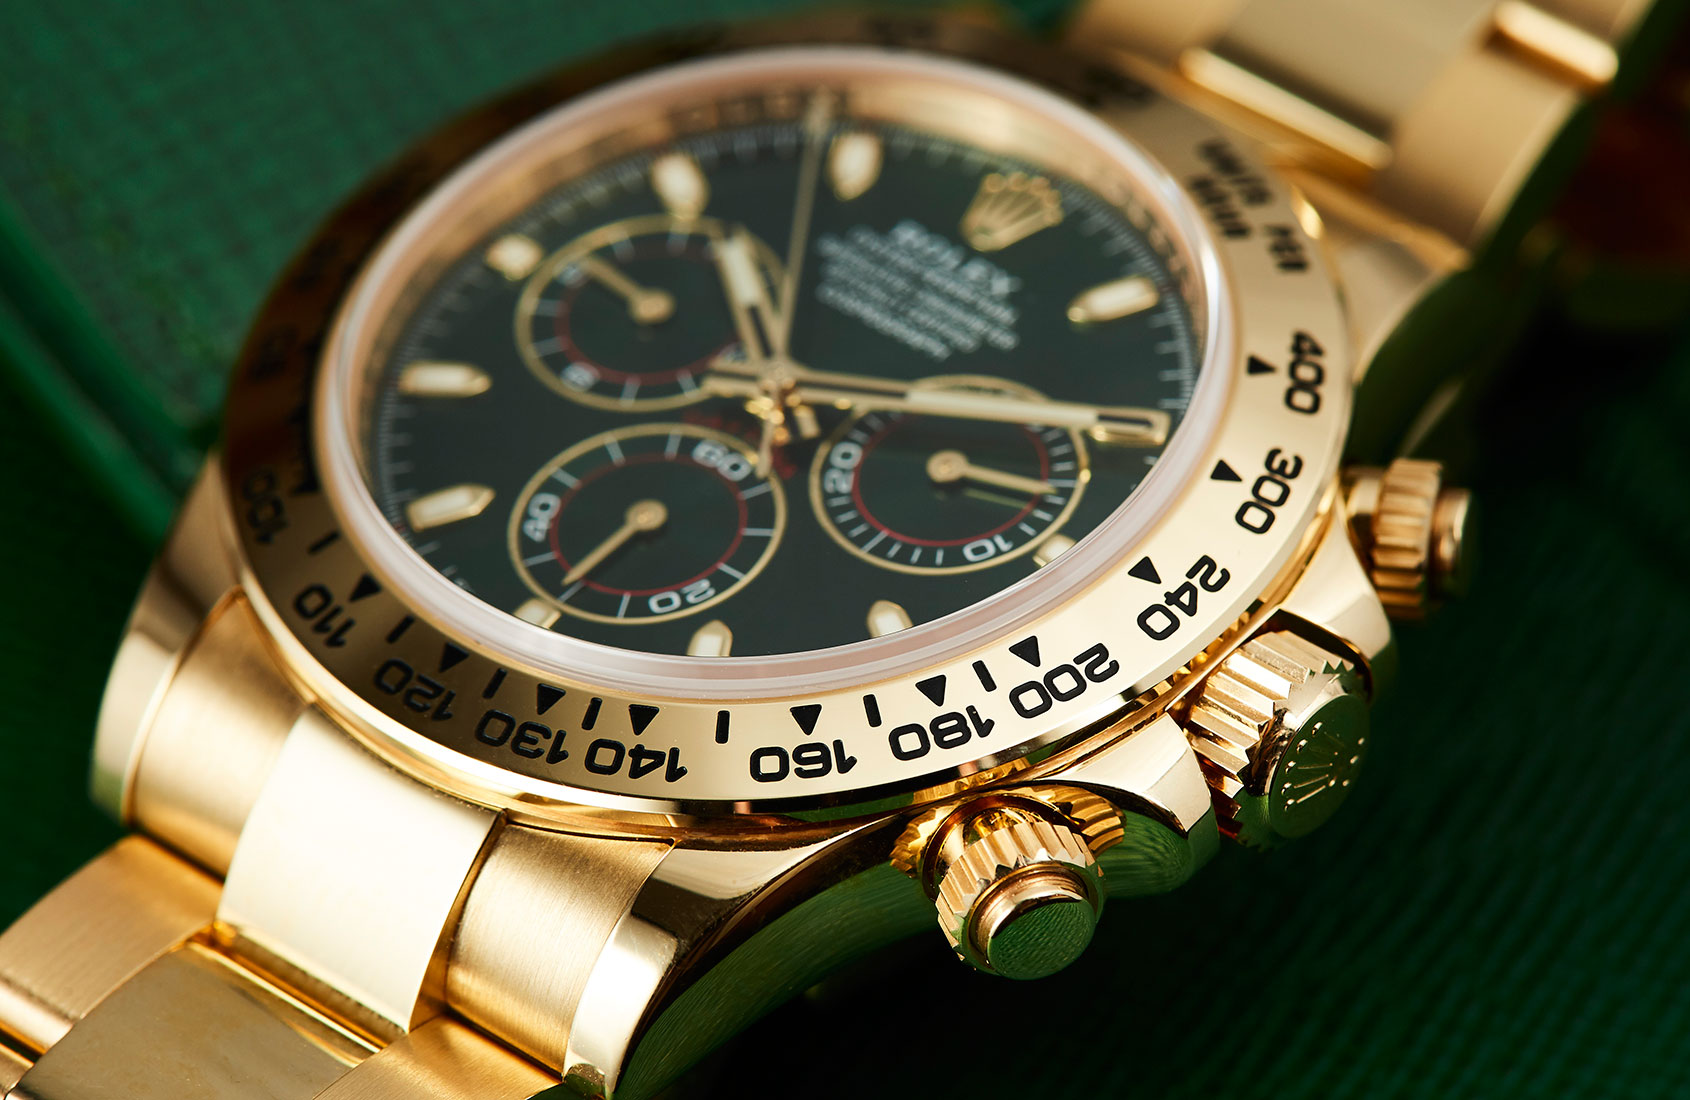 rolex-daytona-yellow-gold-green-dial-116508-5